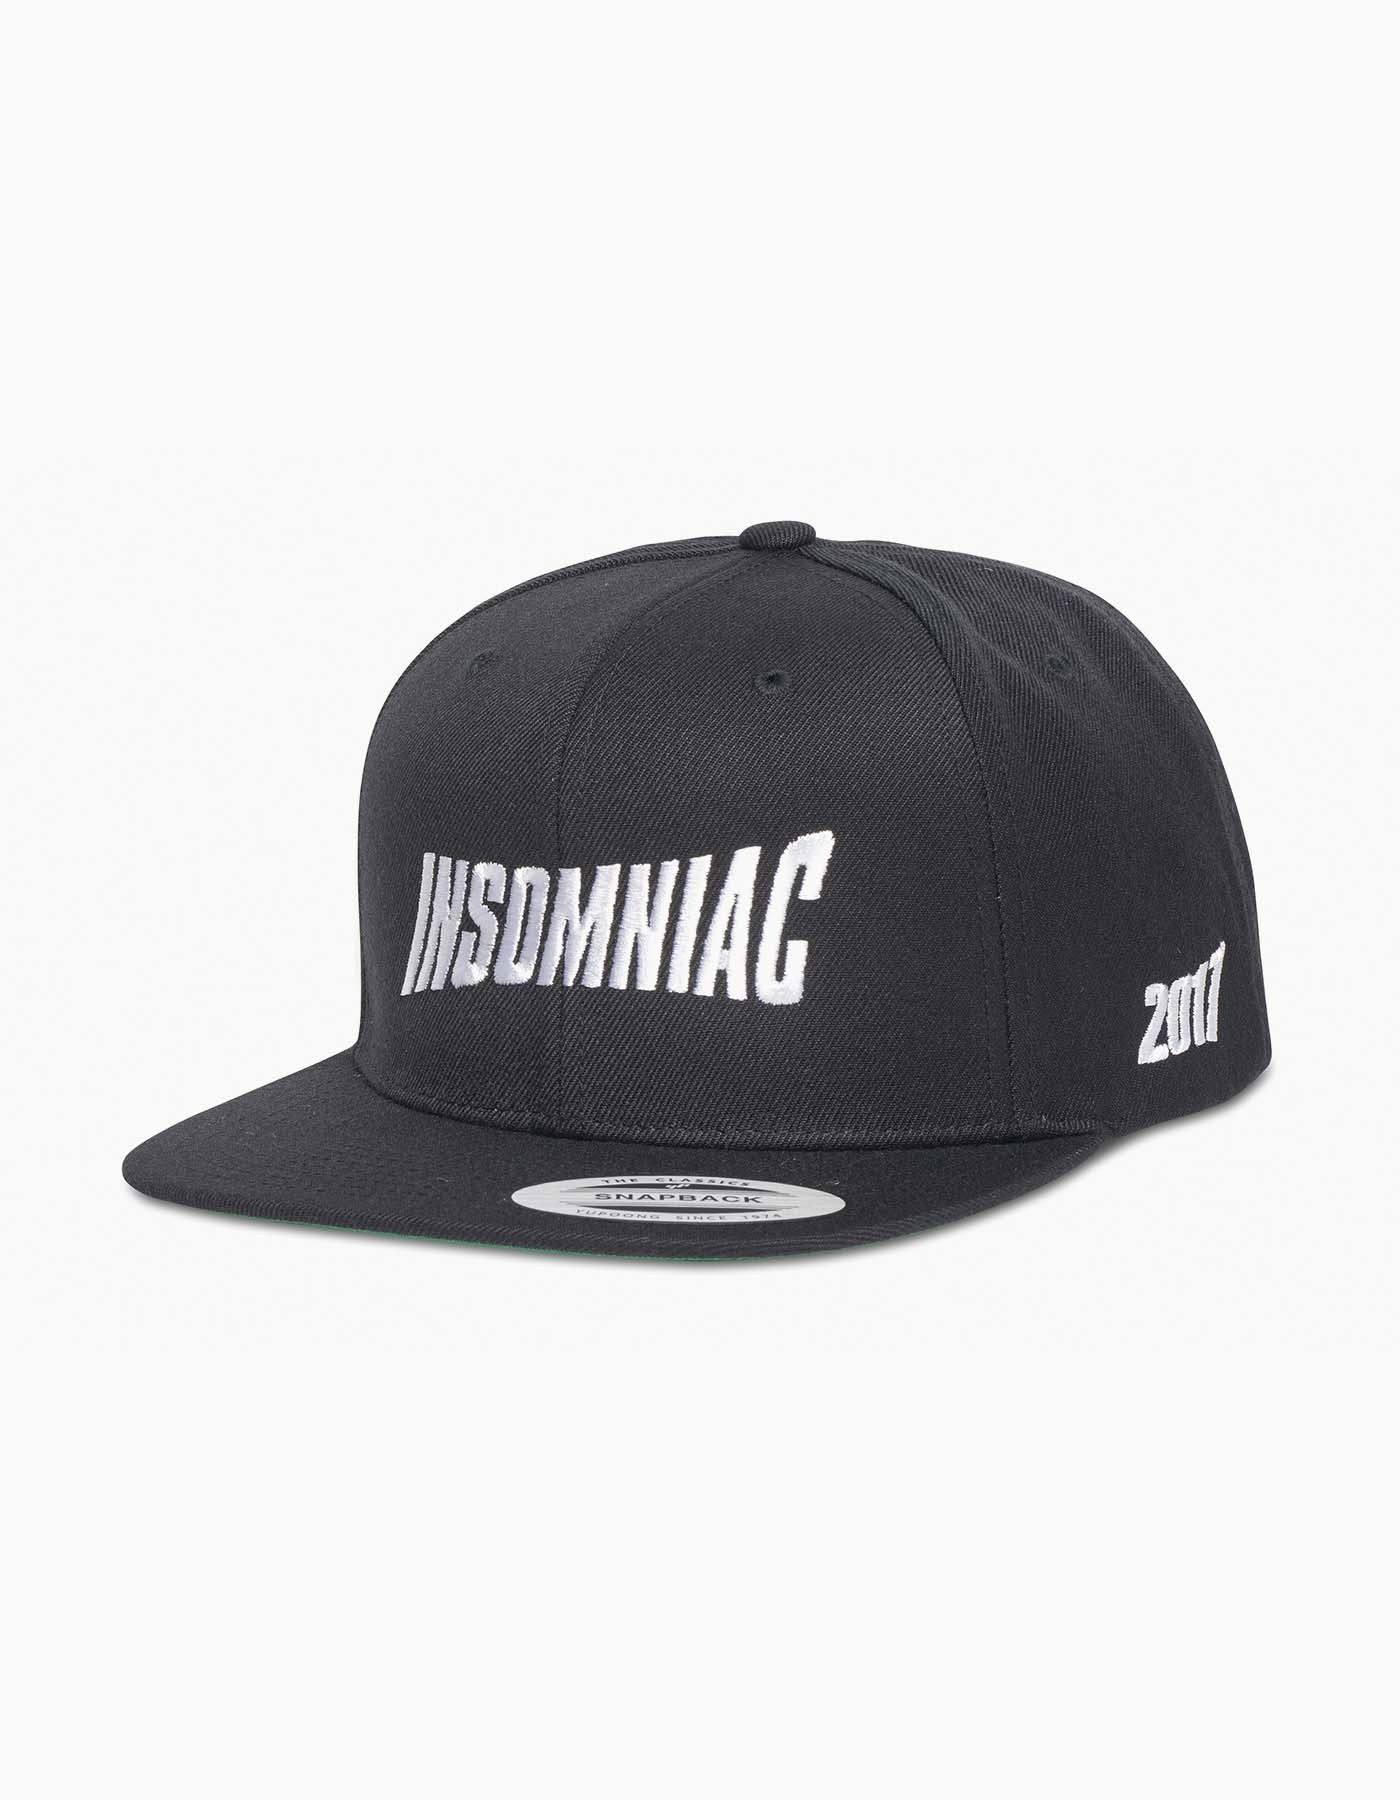 Insomniac-2017 Flash Cap Black